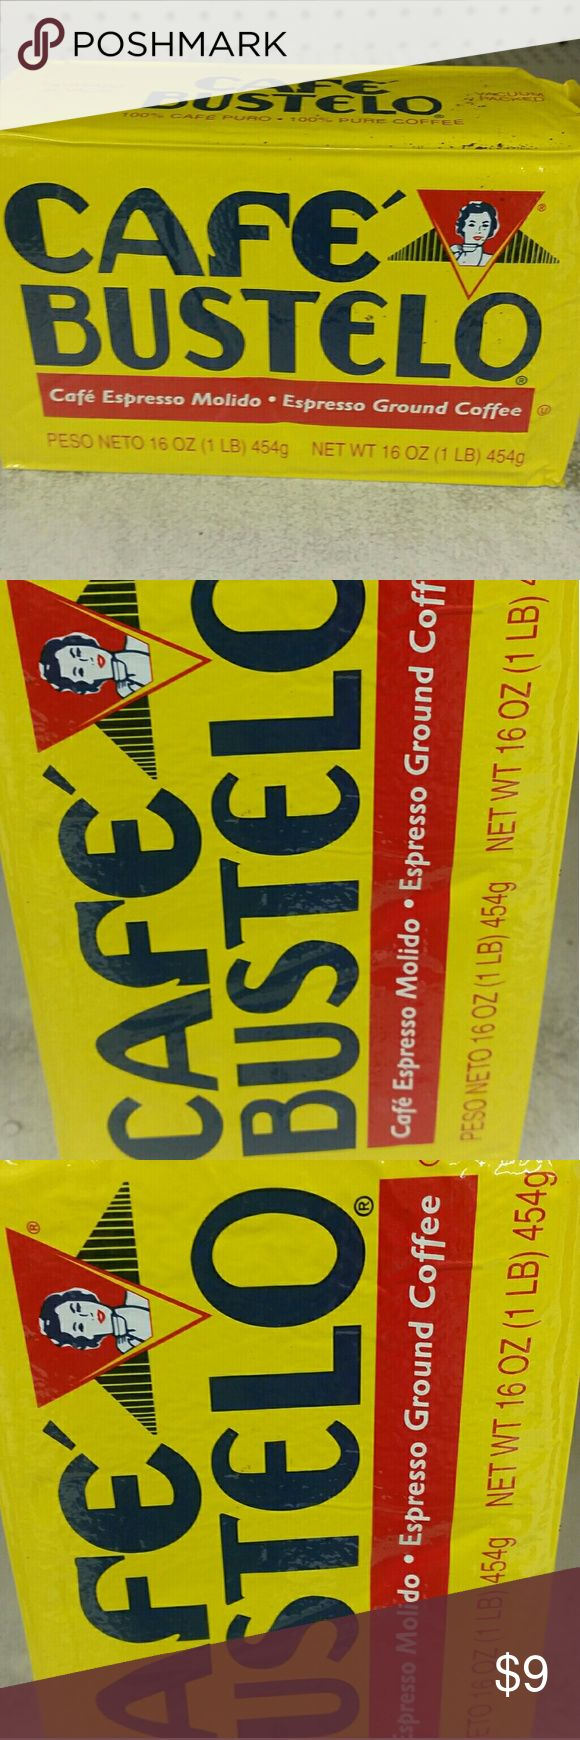 Cafe Bustelo Cuban Espresso Ground Coffee CAFE BUSTELO ESPRESSO GROUND COFFE 16 oz.  Cafe Bustelo is a Cuban style coffee, a rich , flavorful blend of the finest coffees in the world. Cafe Bustelo is a dark roast coffee specially roasted for Espresso. 100% Arabica coffee. Always fresh, pure and flavorful. Vacuum packed. 16 oz weight BUSTELO Other